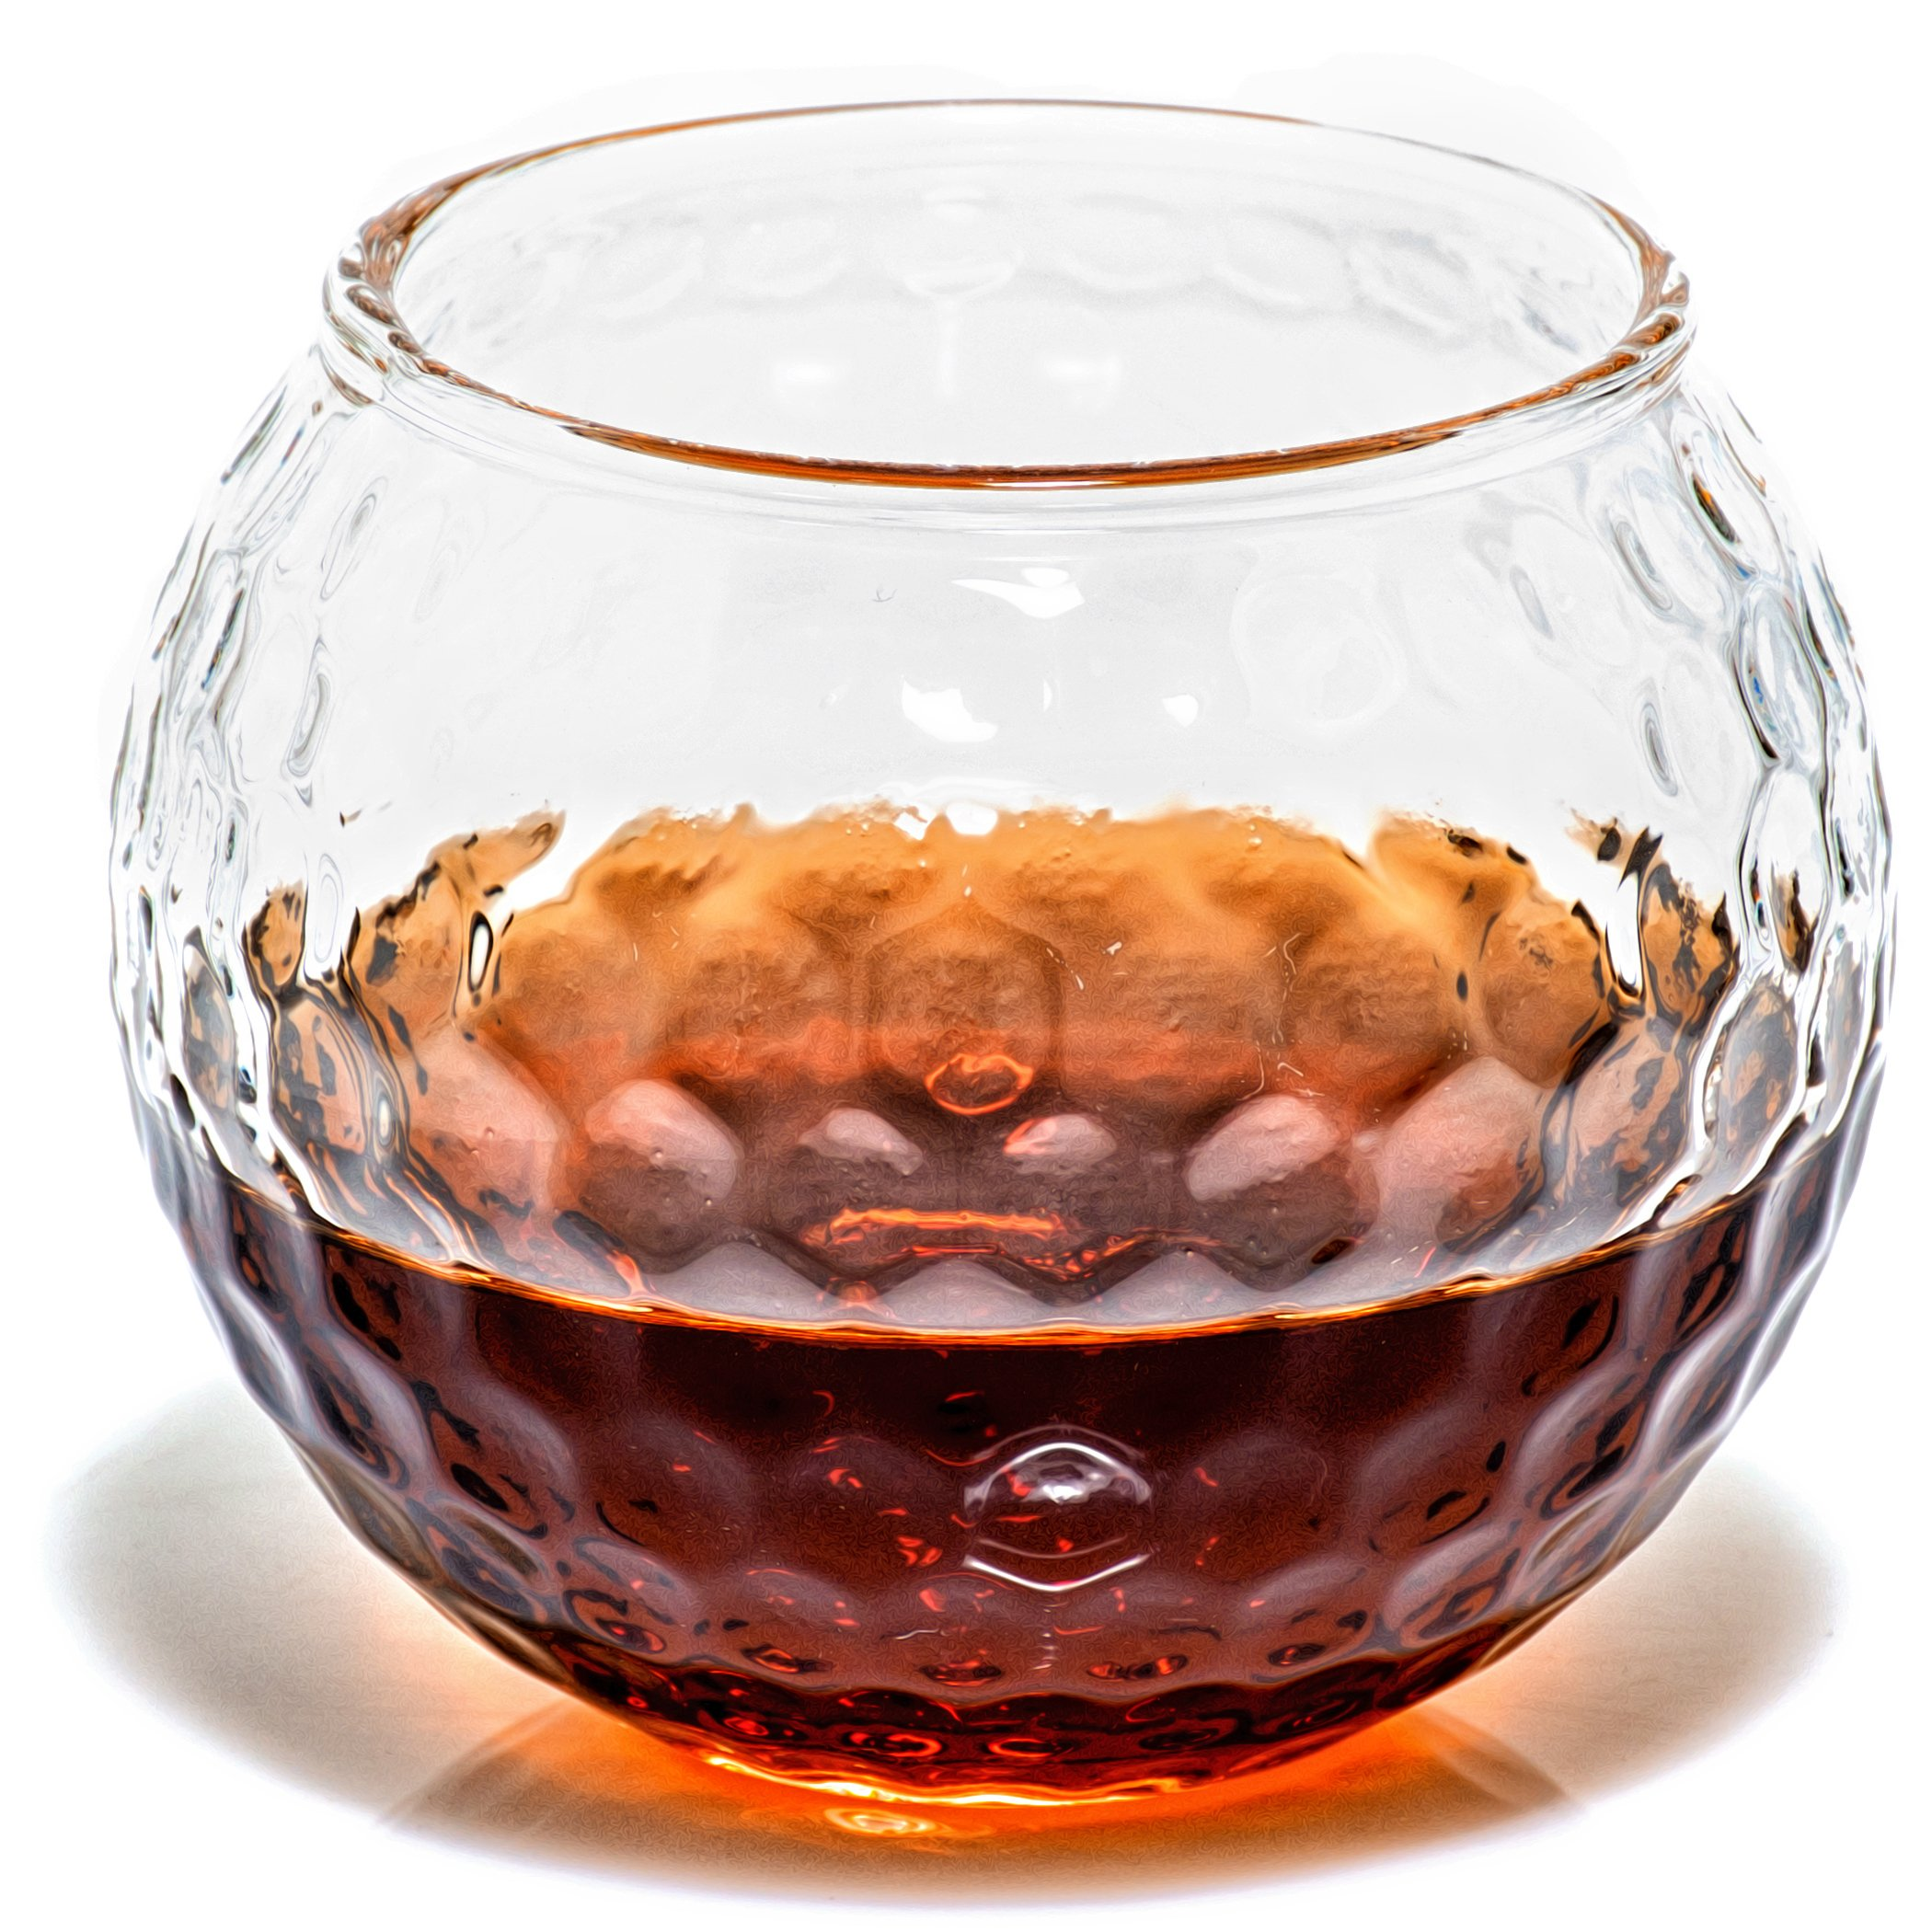 Golf Whiskey Glass – 10 oz Unique Golf Ball Shaped Rocks Glass (other designs available) for Bourbon, Scotch, Brandy - Old Fashioned/Rocks Glasses from Prestige Decanters (Set of Two - Golf Ball)